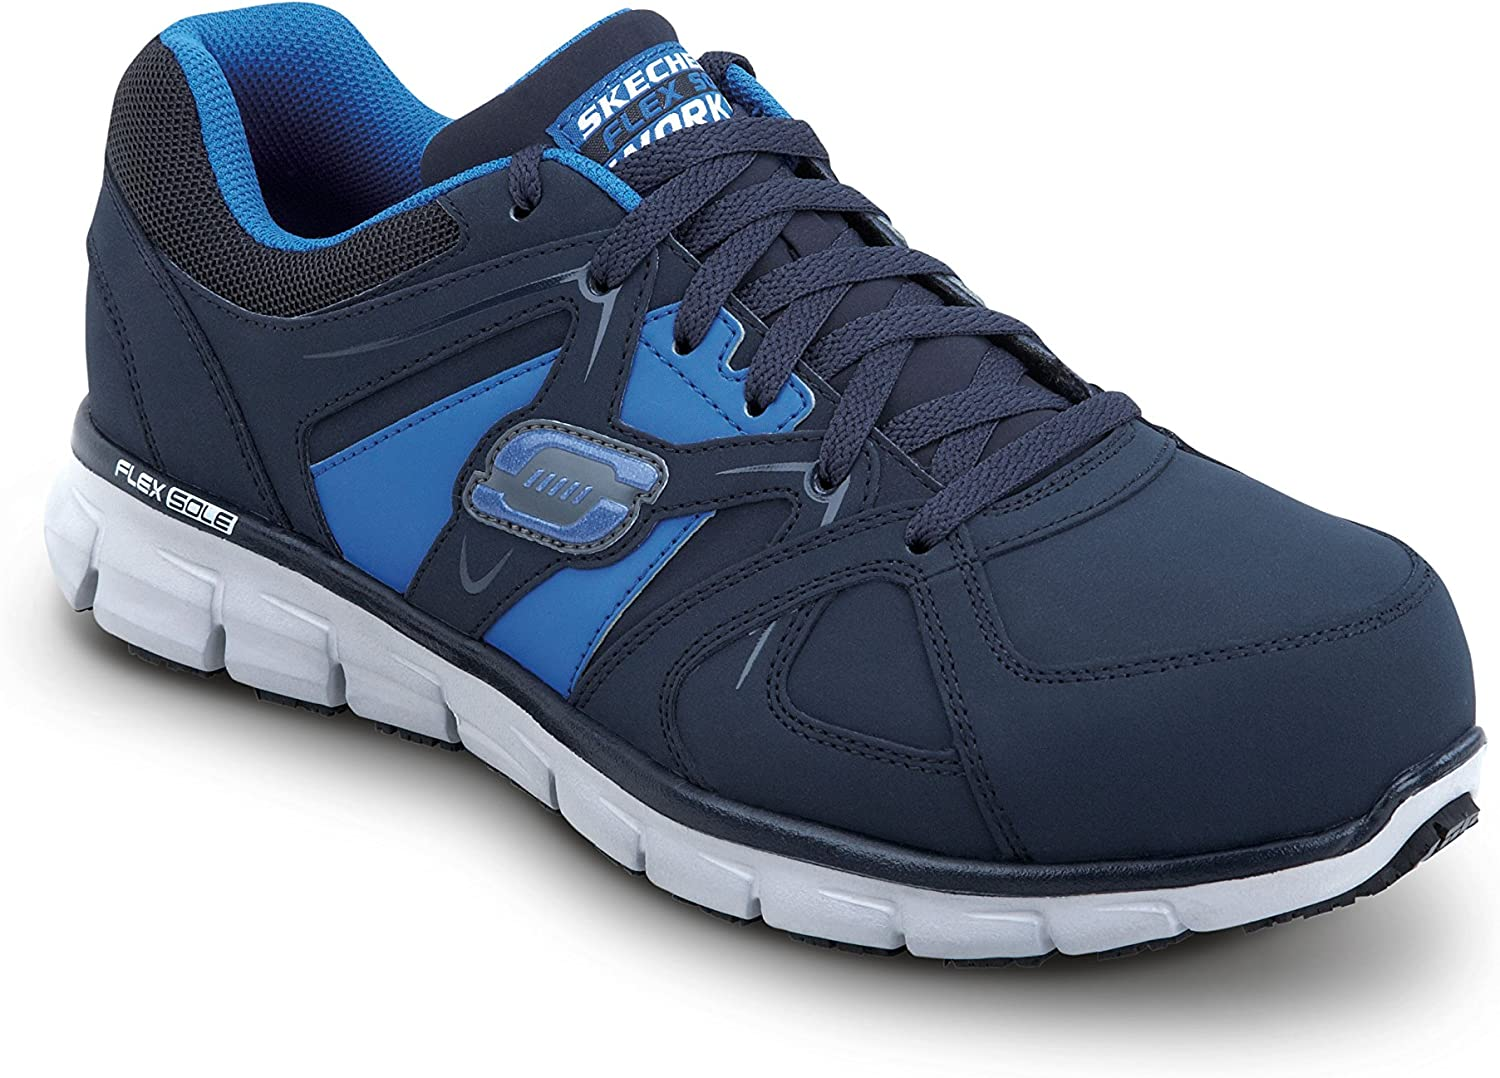 Men's Skechers Gowalk City Champion